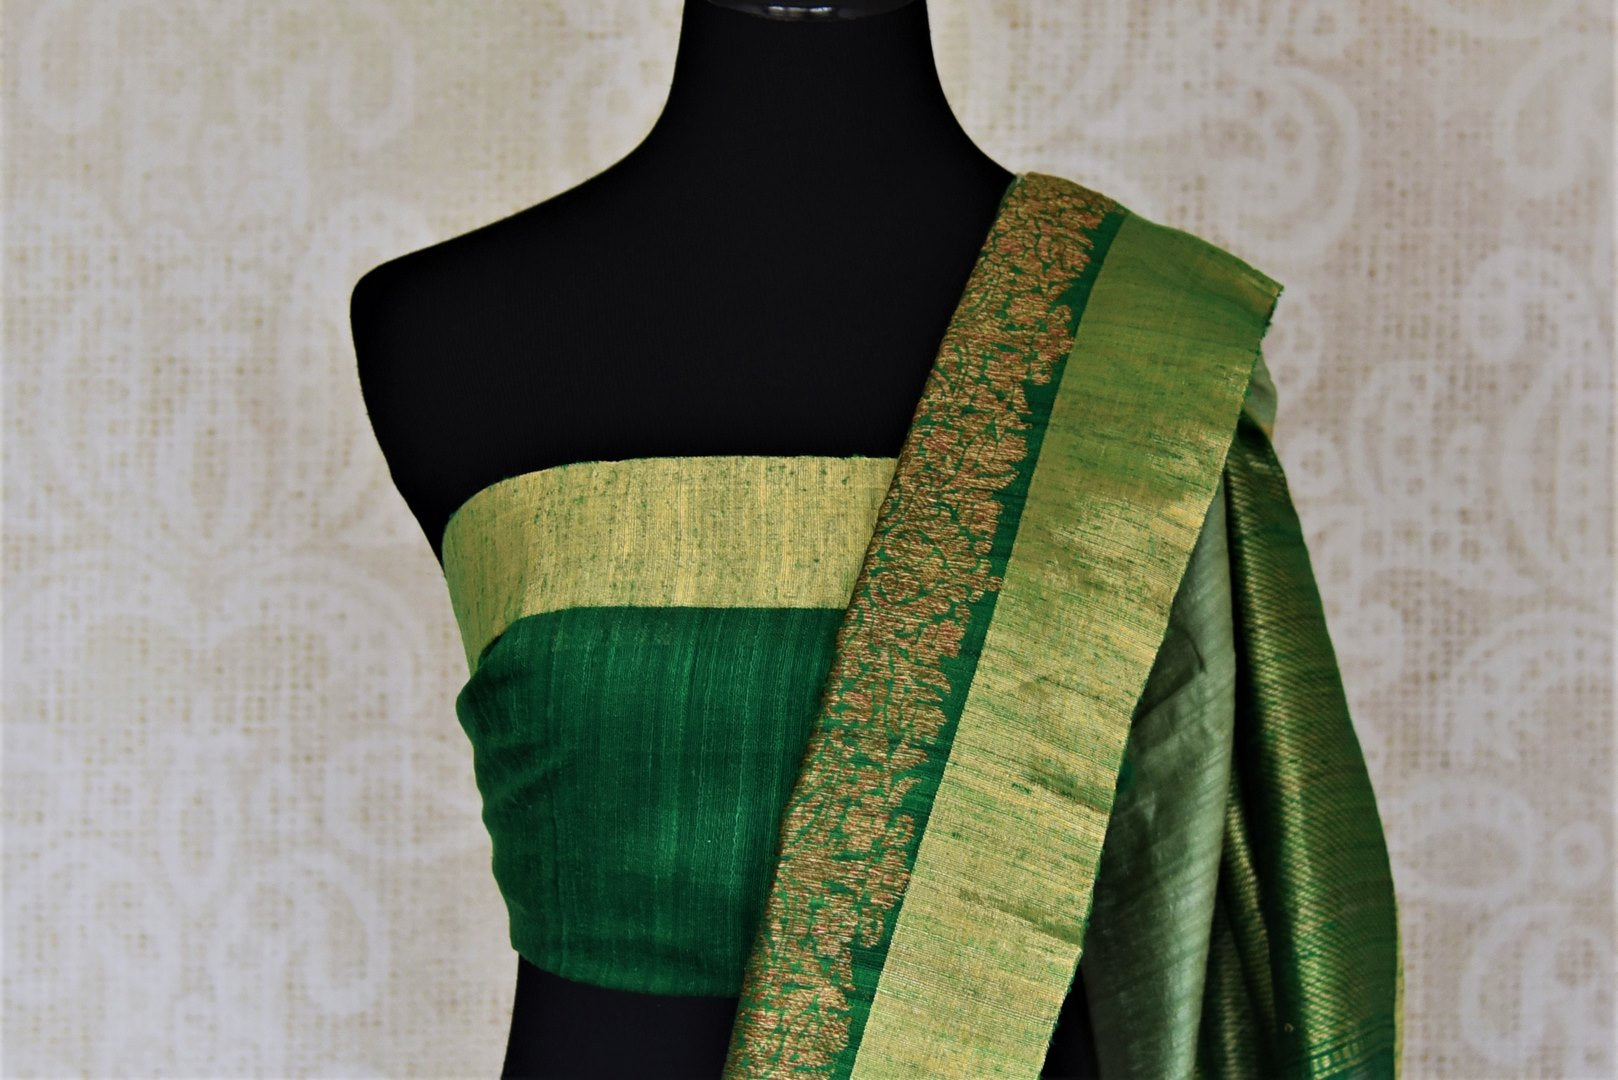 Shop dark green tussar Banarsi saree online in USA with green zari border. Choose tasteful handloom sarees for special occasions from Pure Elegance. Our exclusive Indian fashion store has a myriad of exquisite pure silk saris, tussar sarees, Banarasi sarees for Indian women in USA.-blouse pallu